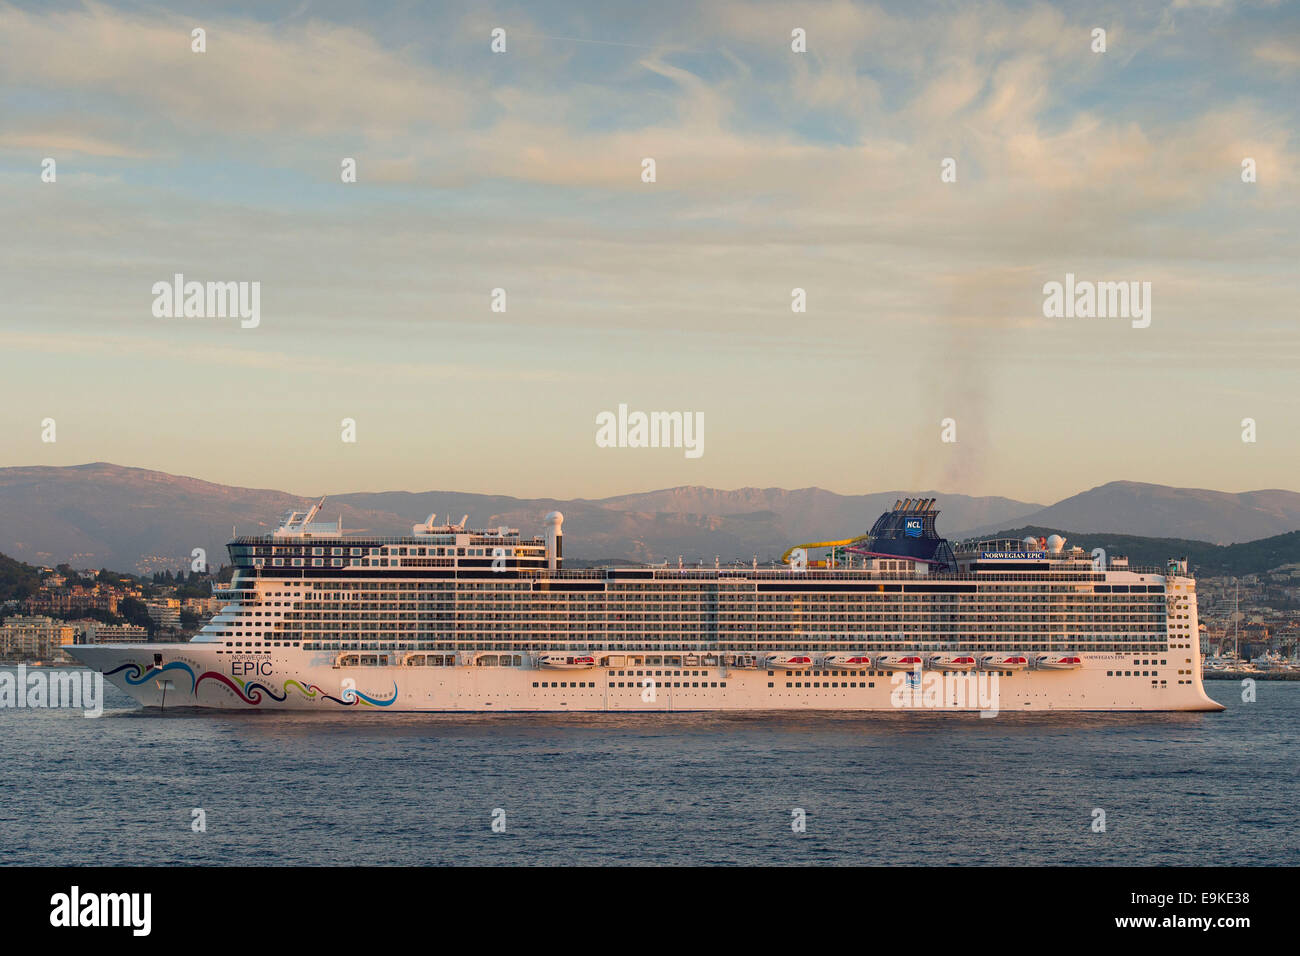 Cruise ship the Norwegian Epic operated by NCL Cruises seen at sea in Cannes, France. - Stock Image